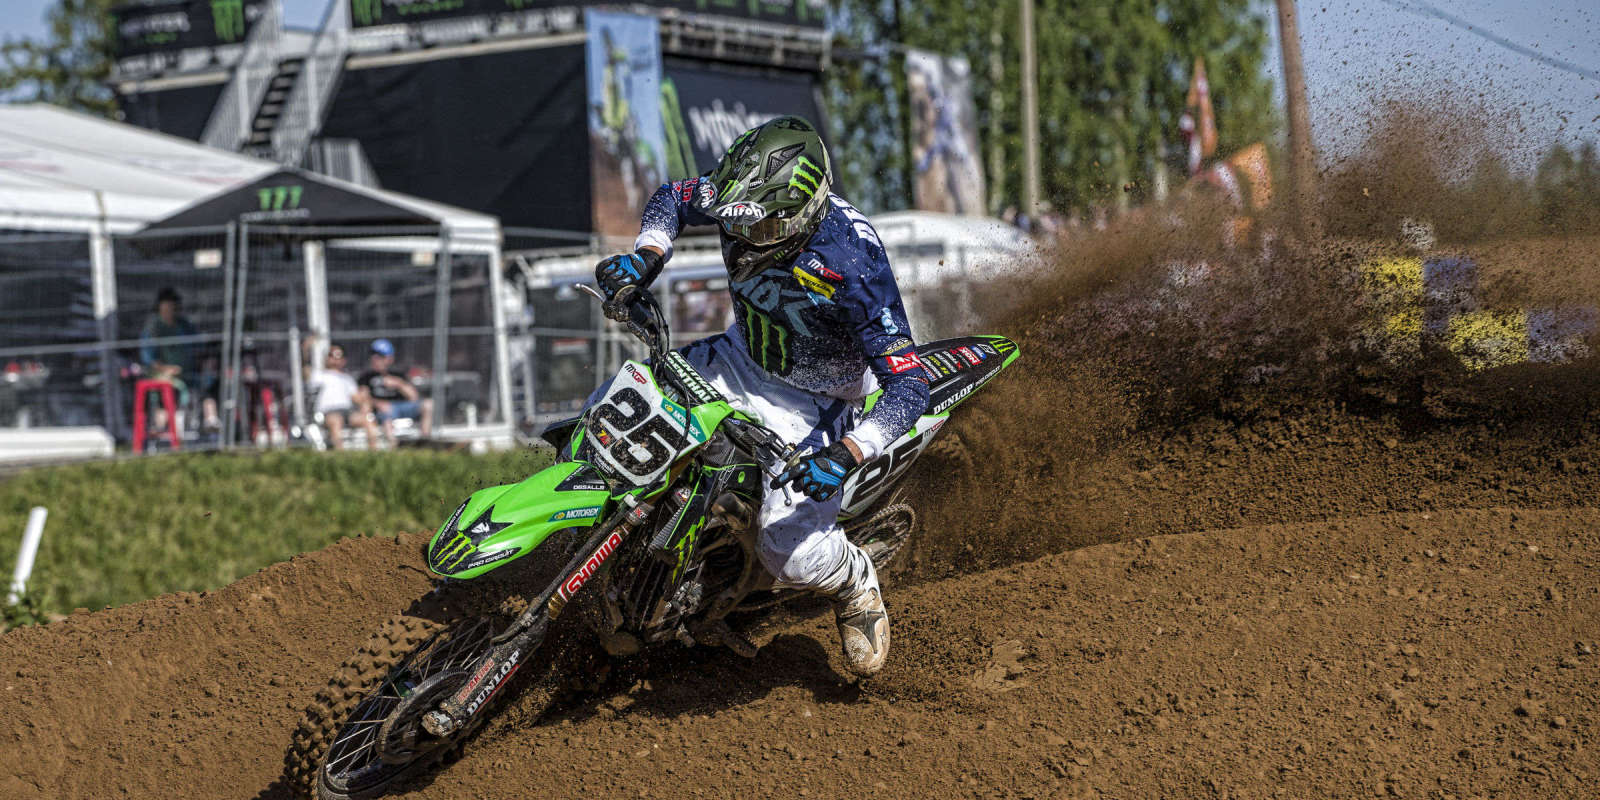 Clement Desalle at the 2018 Grand Prix of Latvia